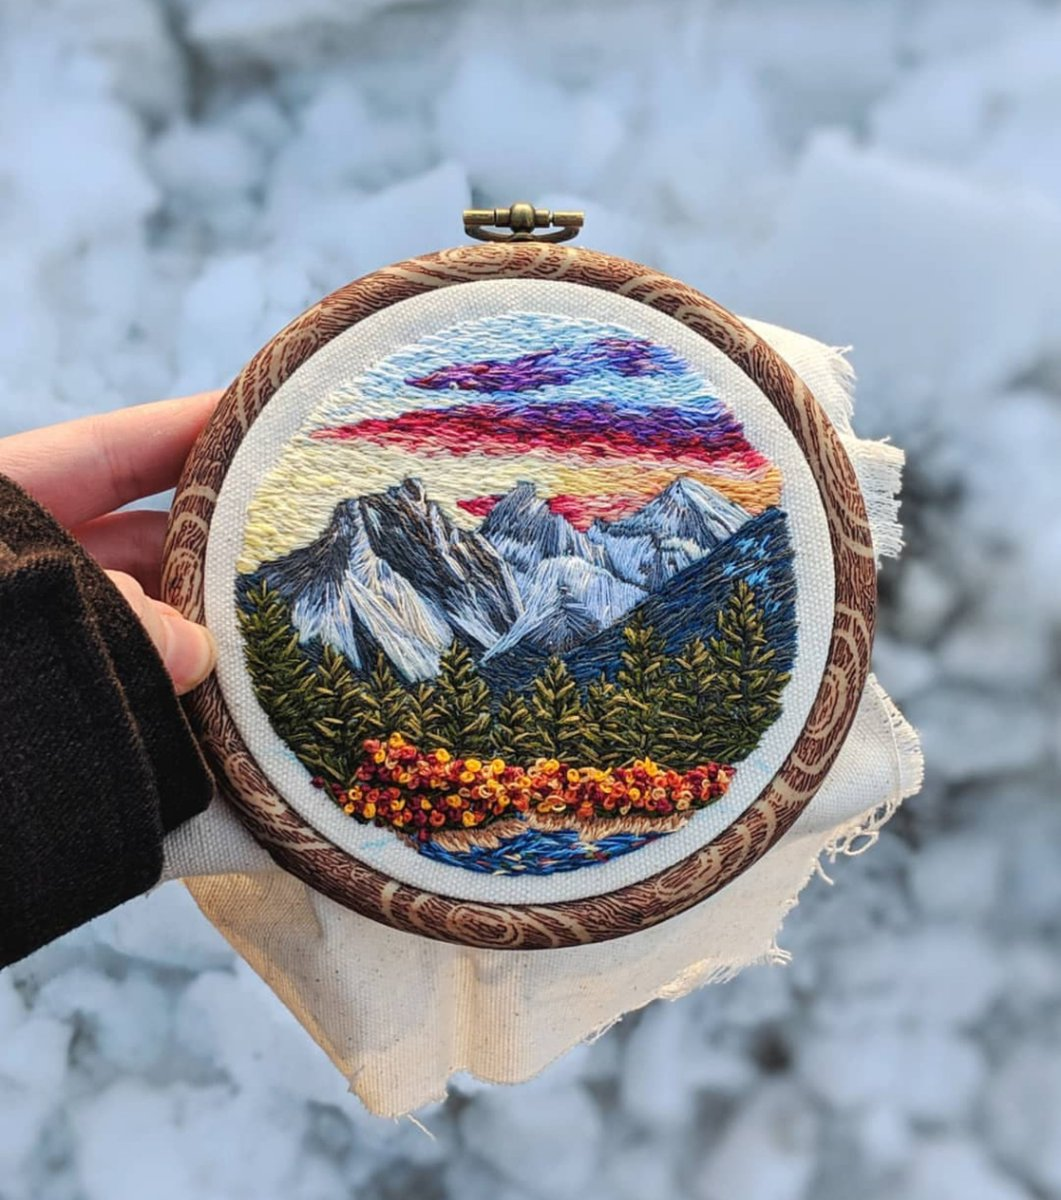 Landscape embroidery is defs one of my fave things to do. I love when people commission me to stitch the places that mean the most to them #embroidery #etsy #landscape <br>http://pic.twitter.com/KR9ThbCEjW